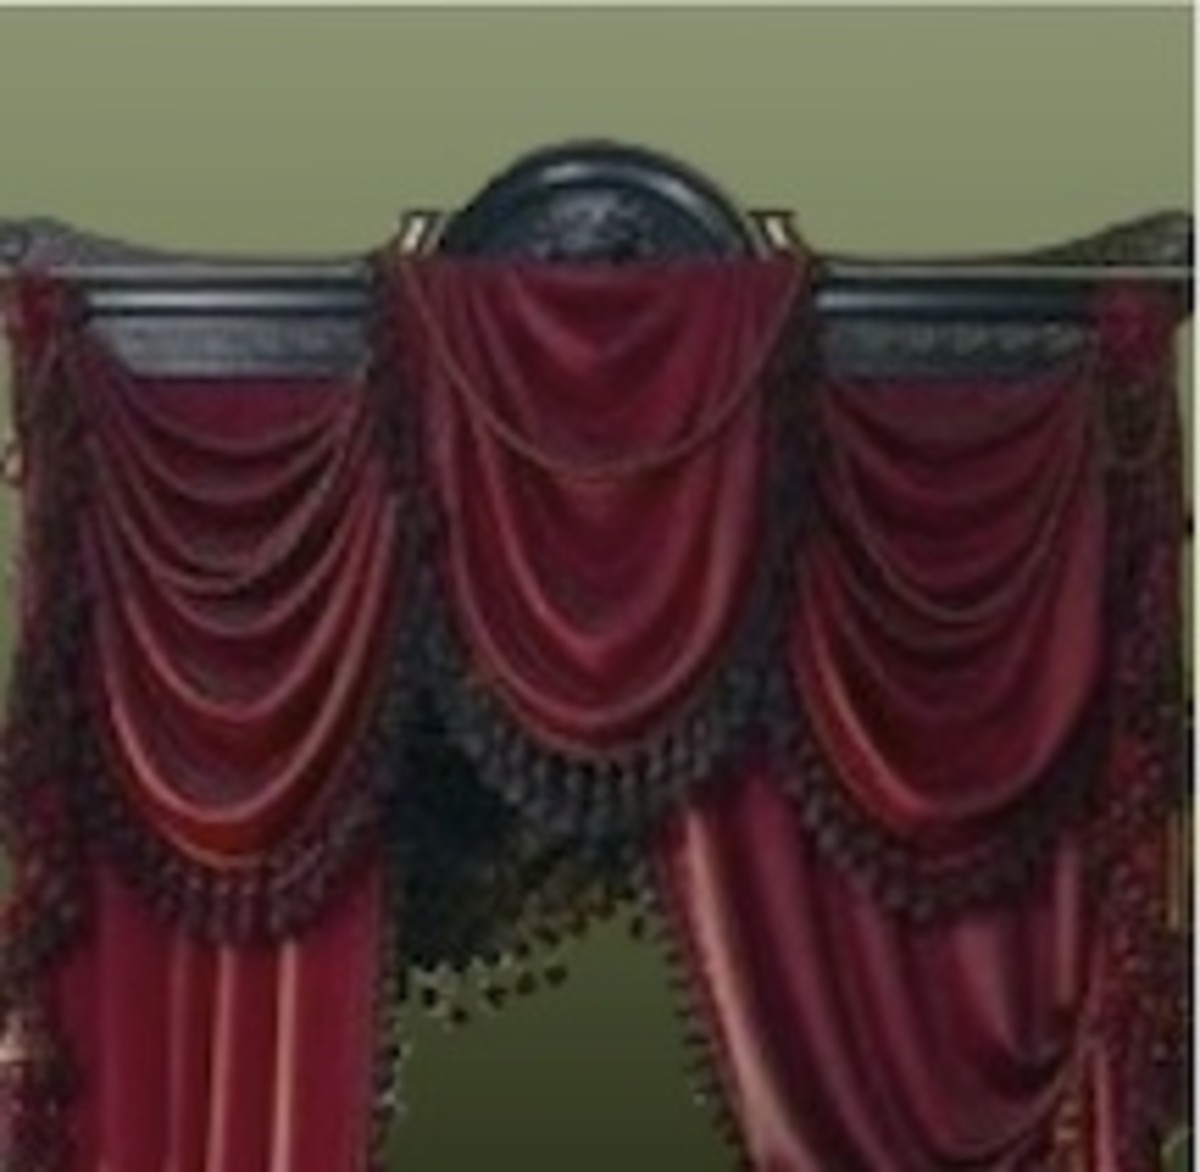 Portiére with decorative valance treatment